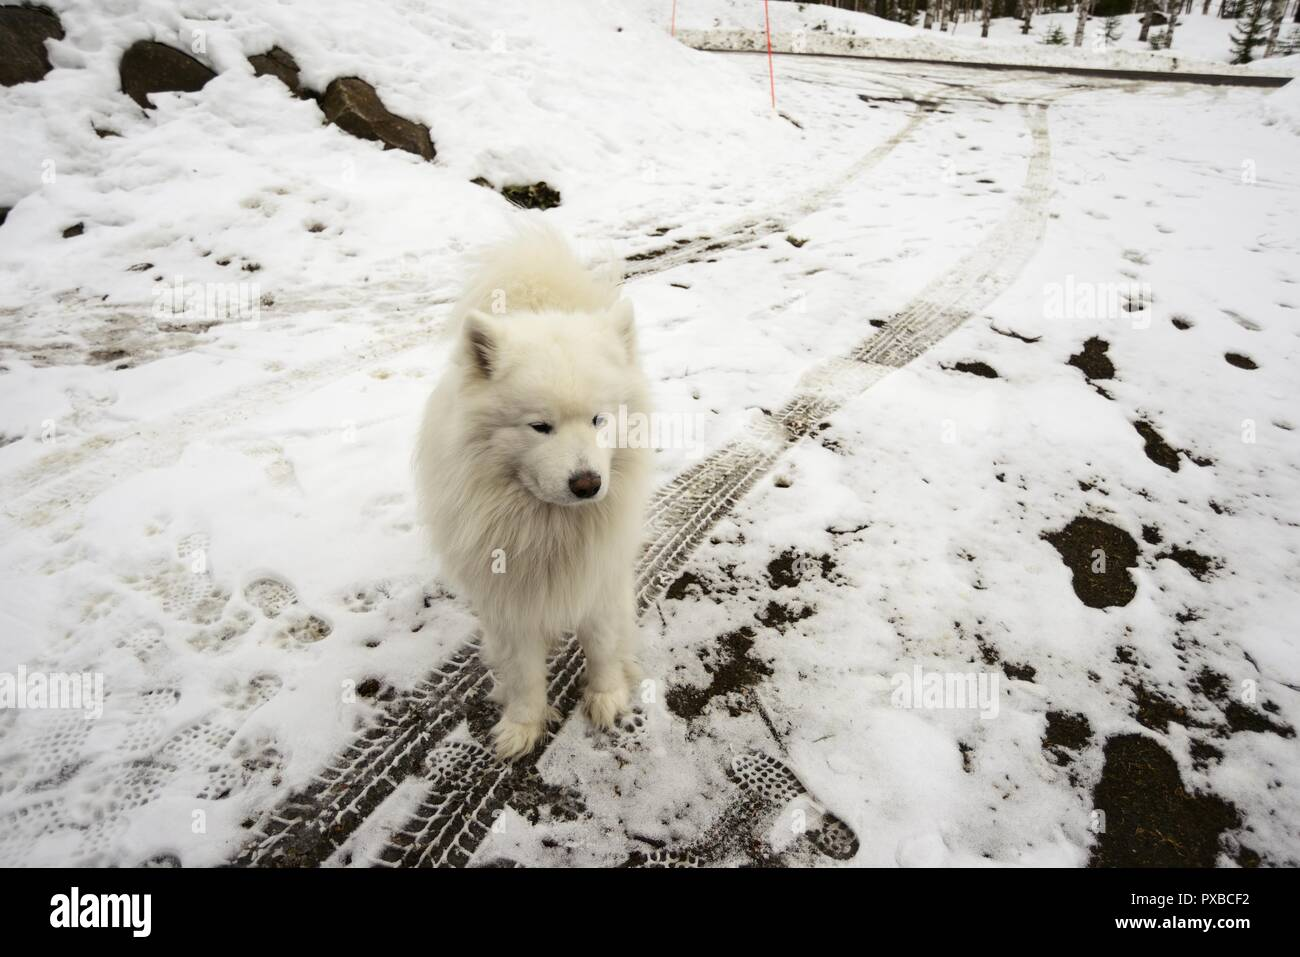 white dog on a snowy road, car tracks and footprints, deadpan photo - Stock Image